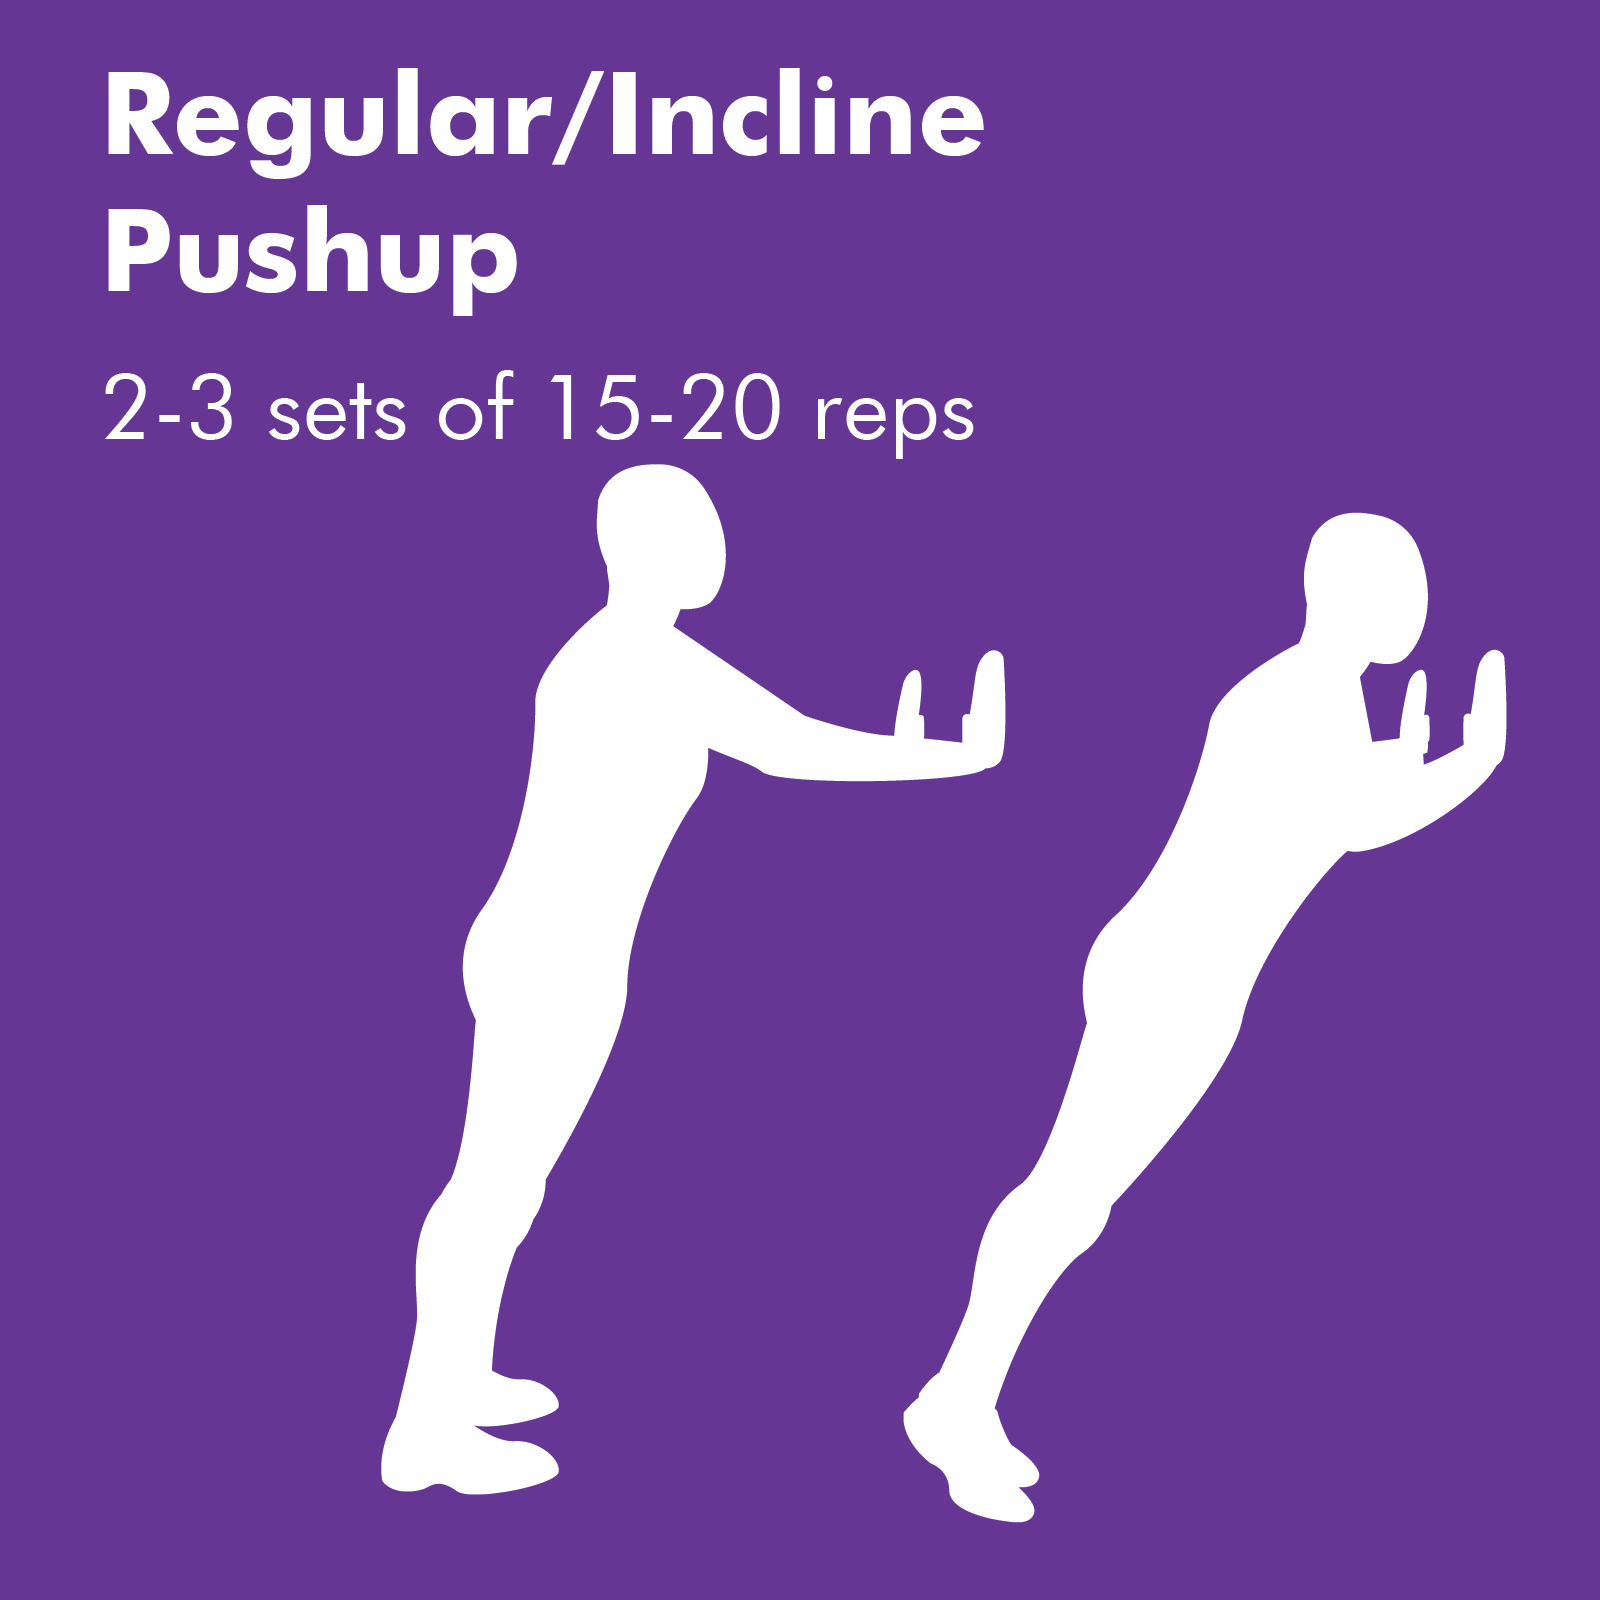 Pushups are a nightmare for many, however, incline pushups using a wall or bench make it easier while still giving you exercise. Pushups can also be done on your knees for comfort.